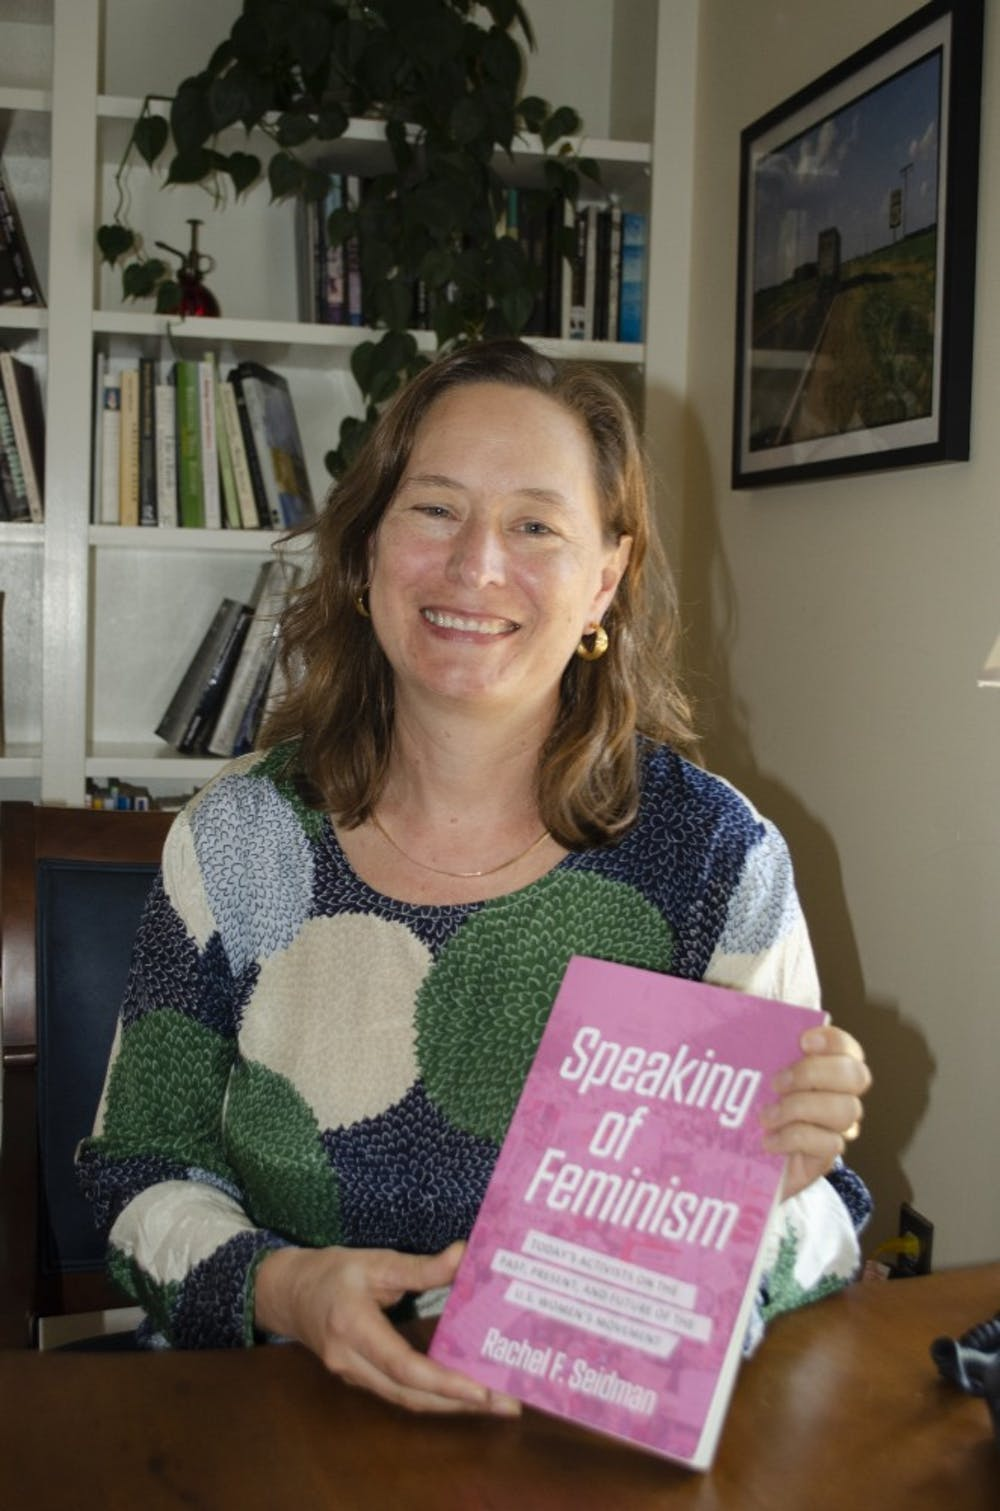 Oral historian brings feminism discussion to Chapel Hill community